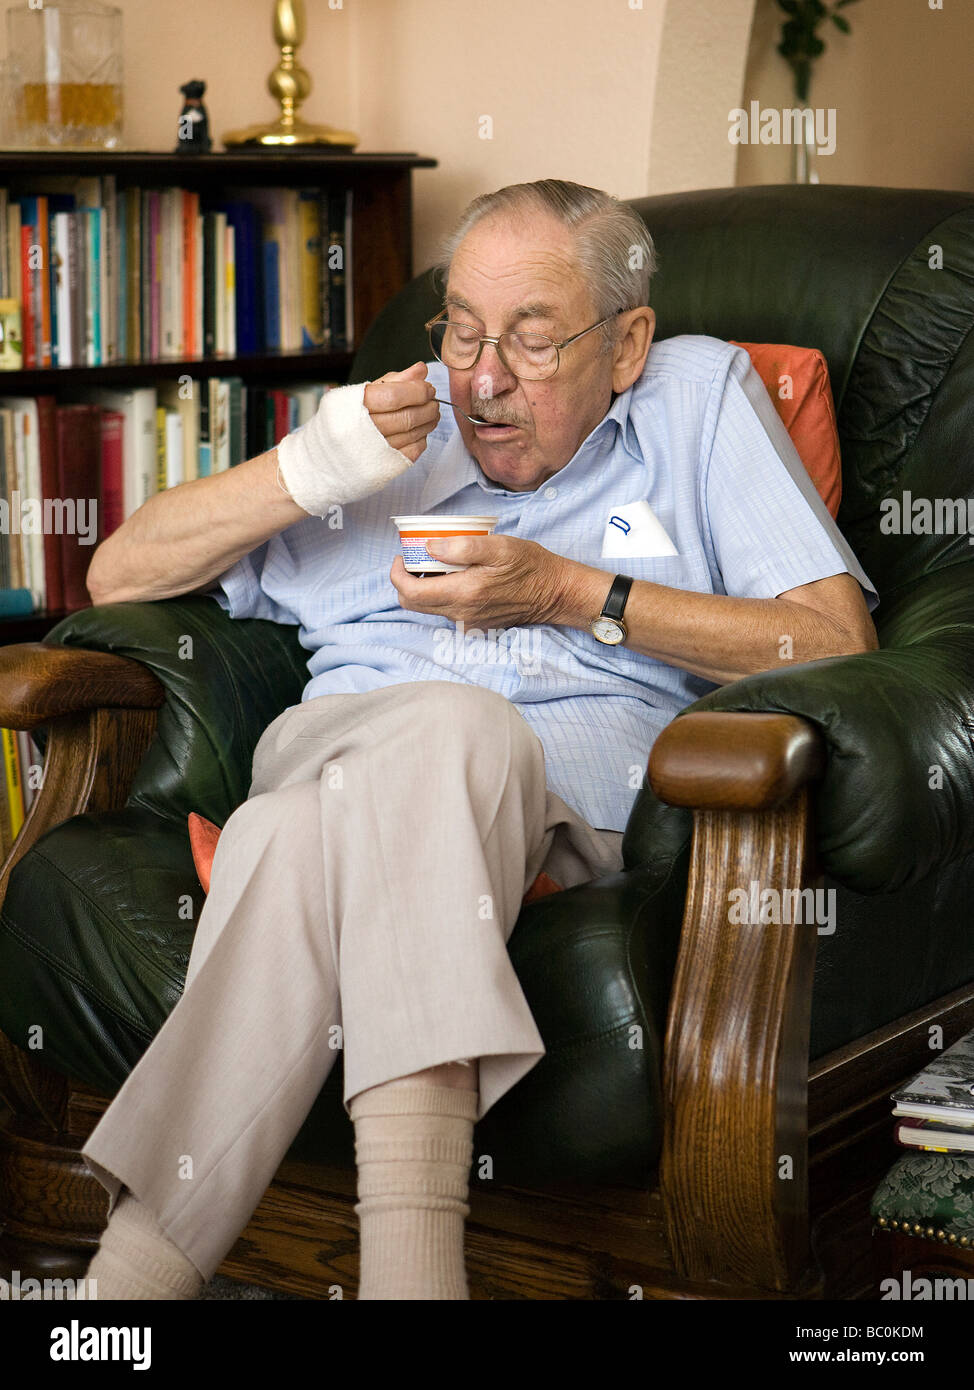 Old man sits in his favourite armchair eating a yoghurt